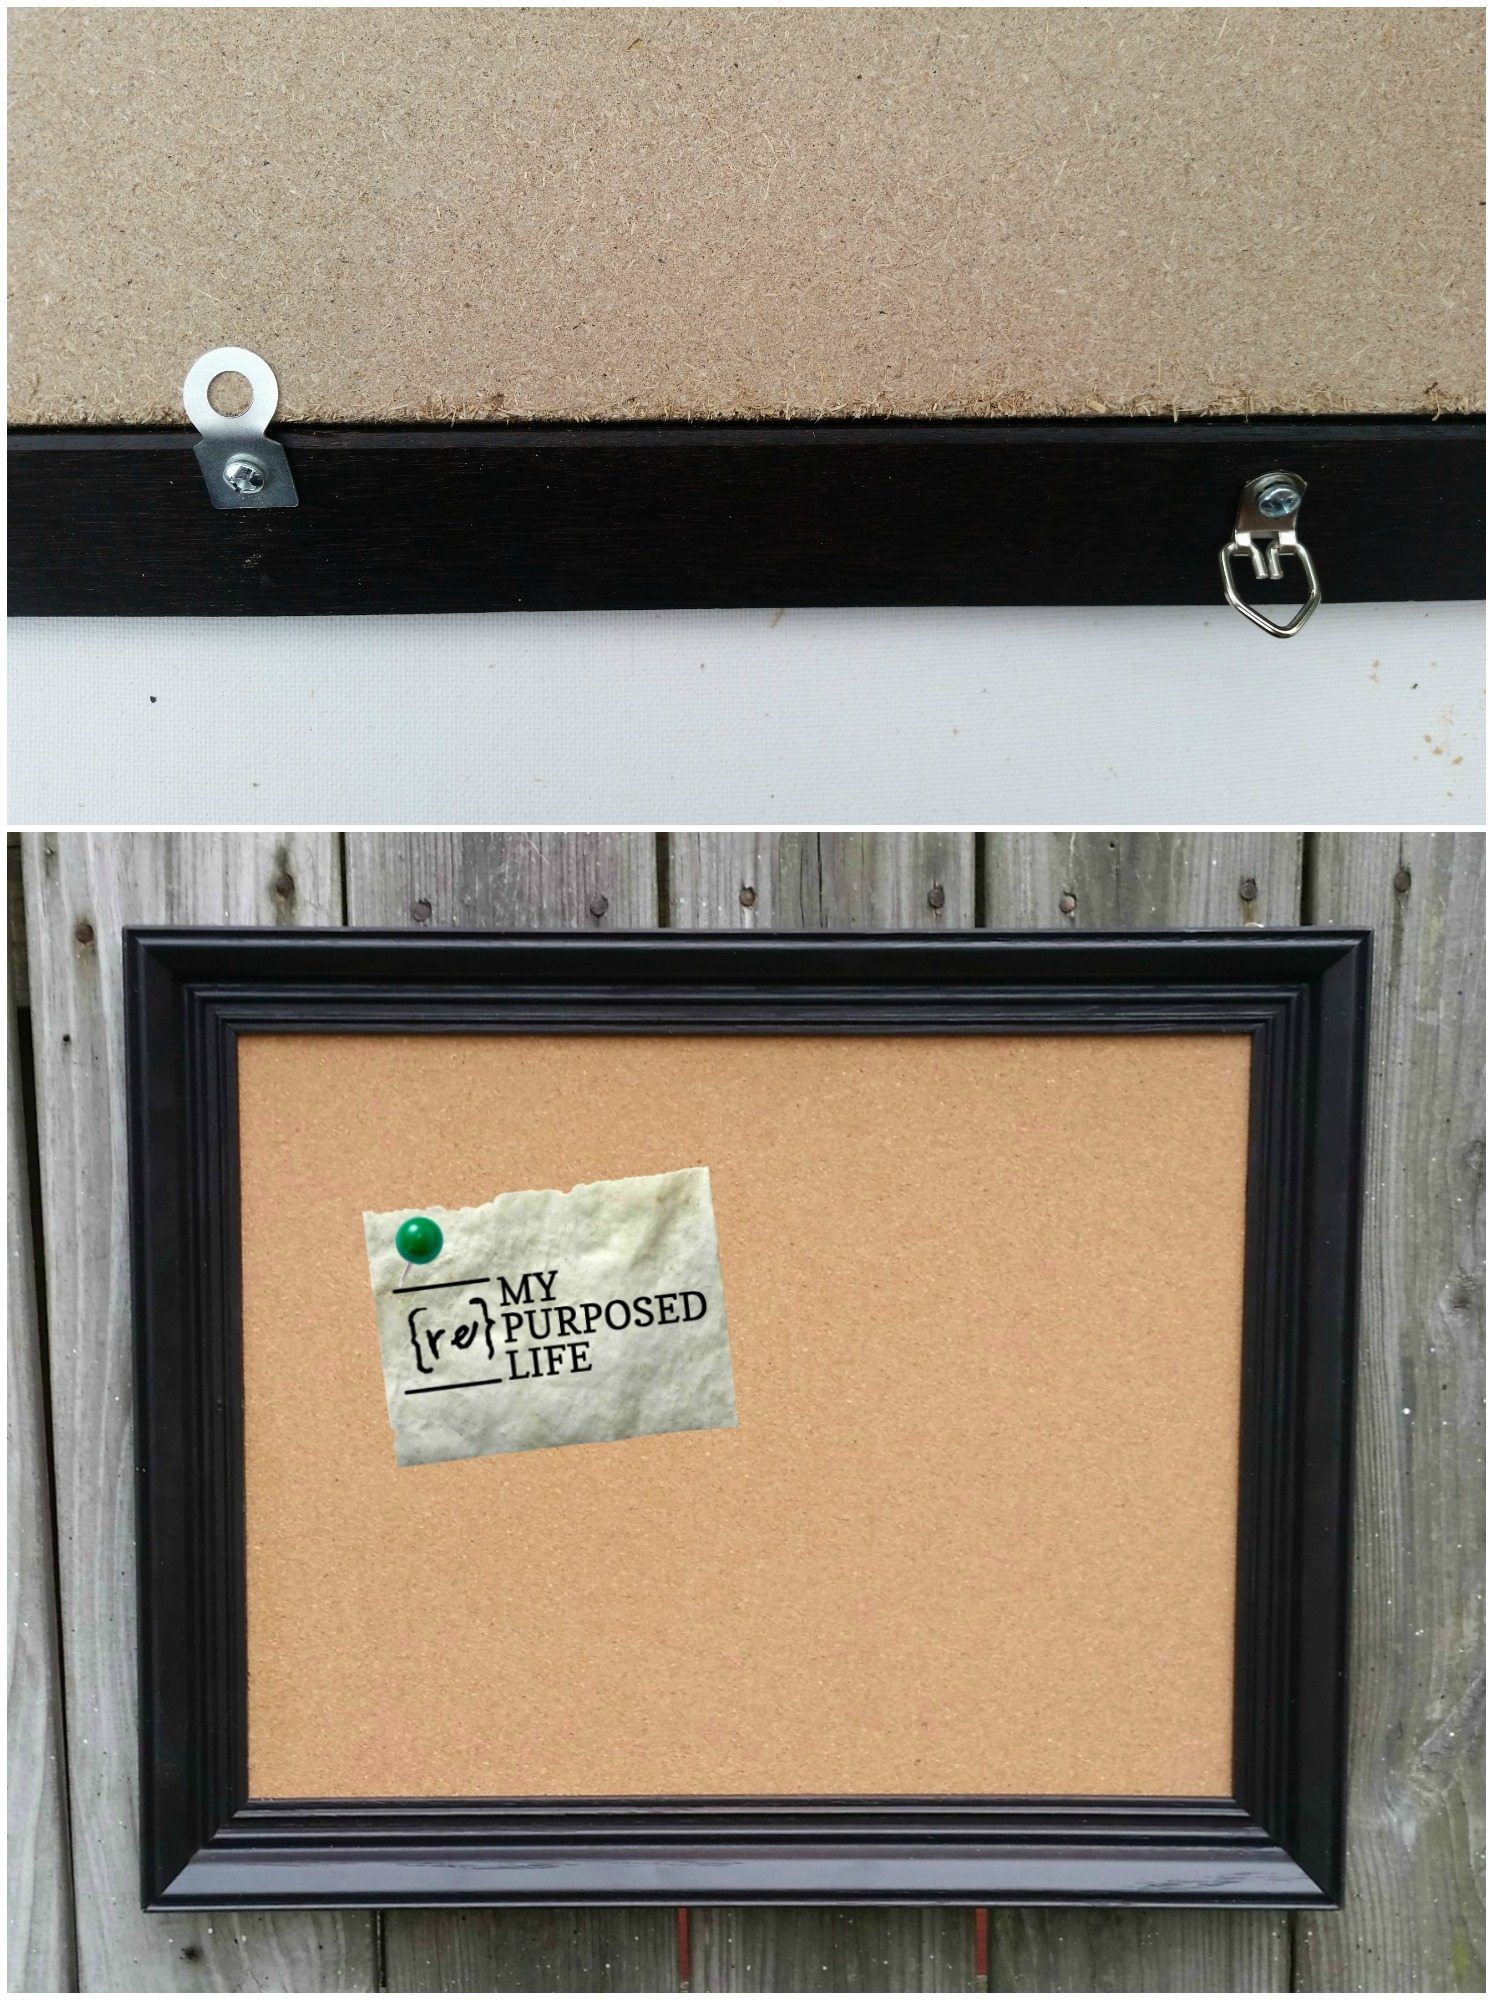 Picture Frame Corkboard - My Repurposed Life®